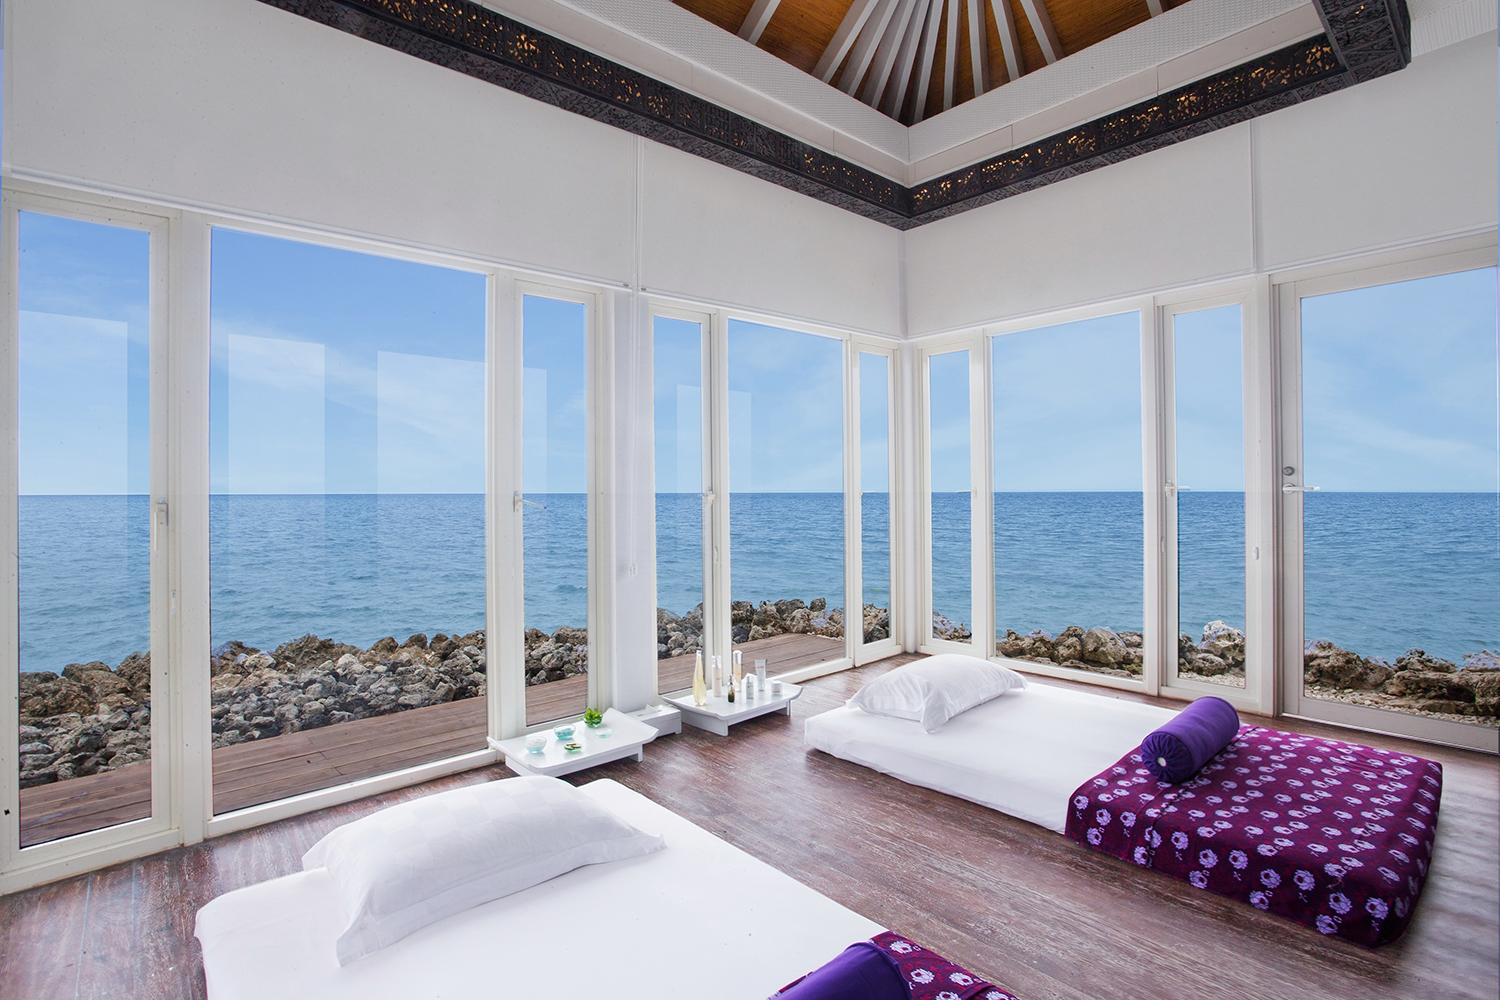 Treatment views at the Ayana Resort and Spa in Bali.